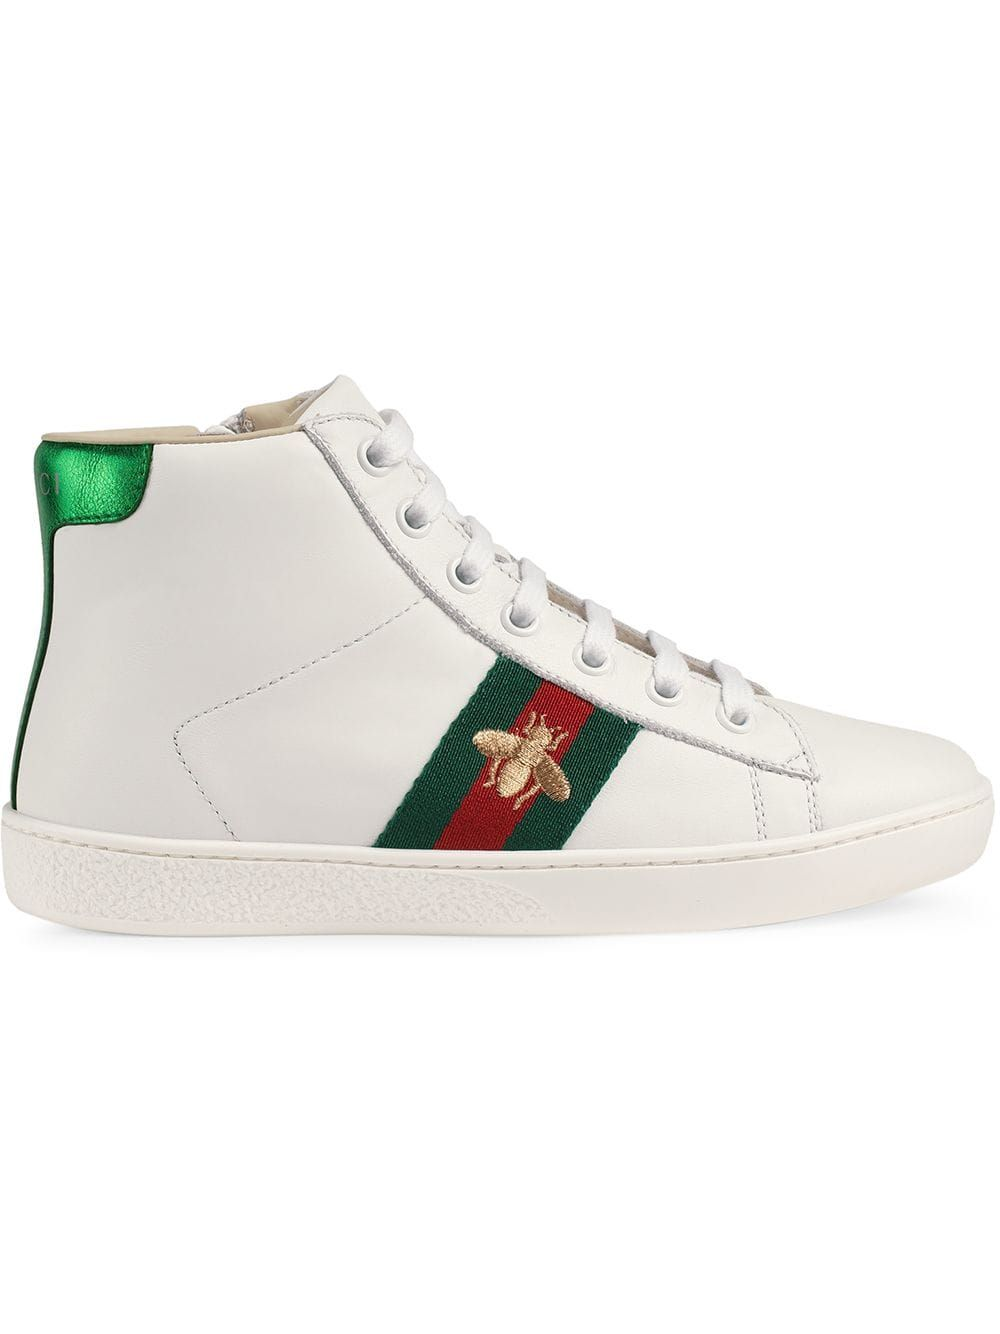 GUCCI CHILDRENS LEATHER HIGHTOP SNEAKER